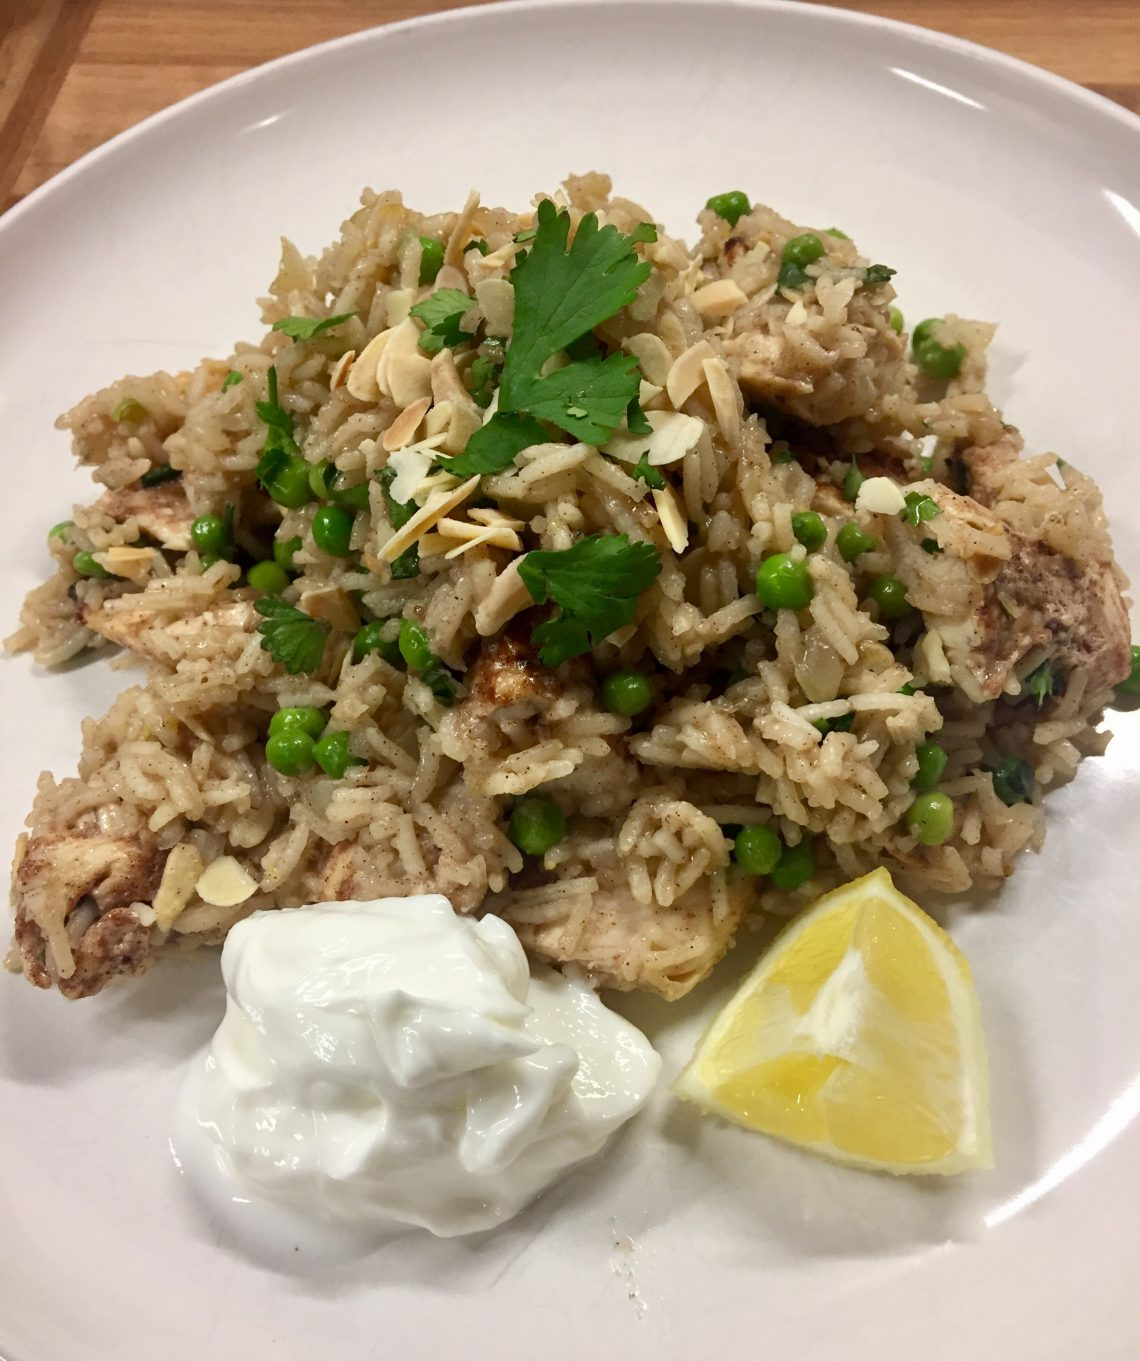 Cinnamon and Lemon Chicken Pilaf